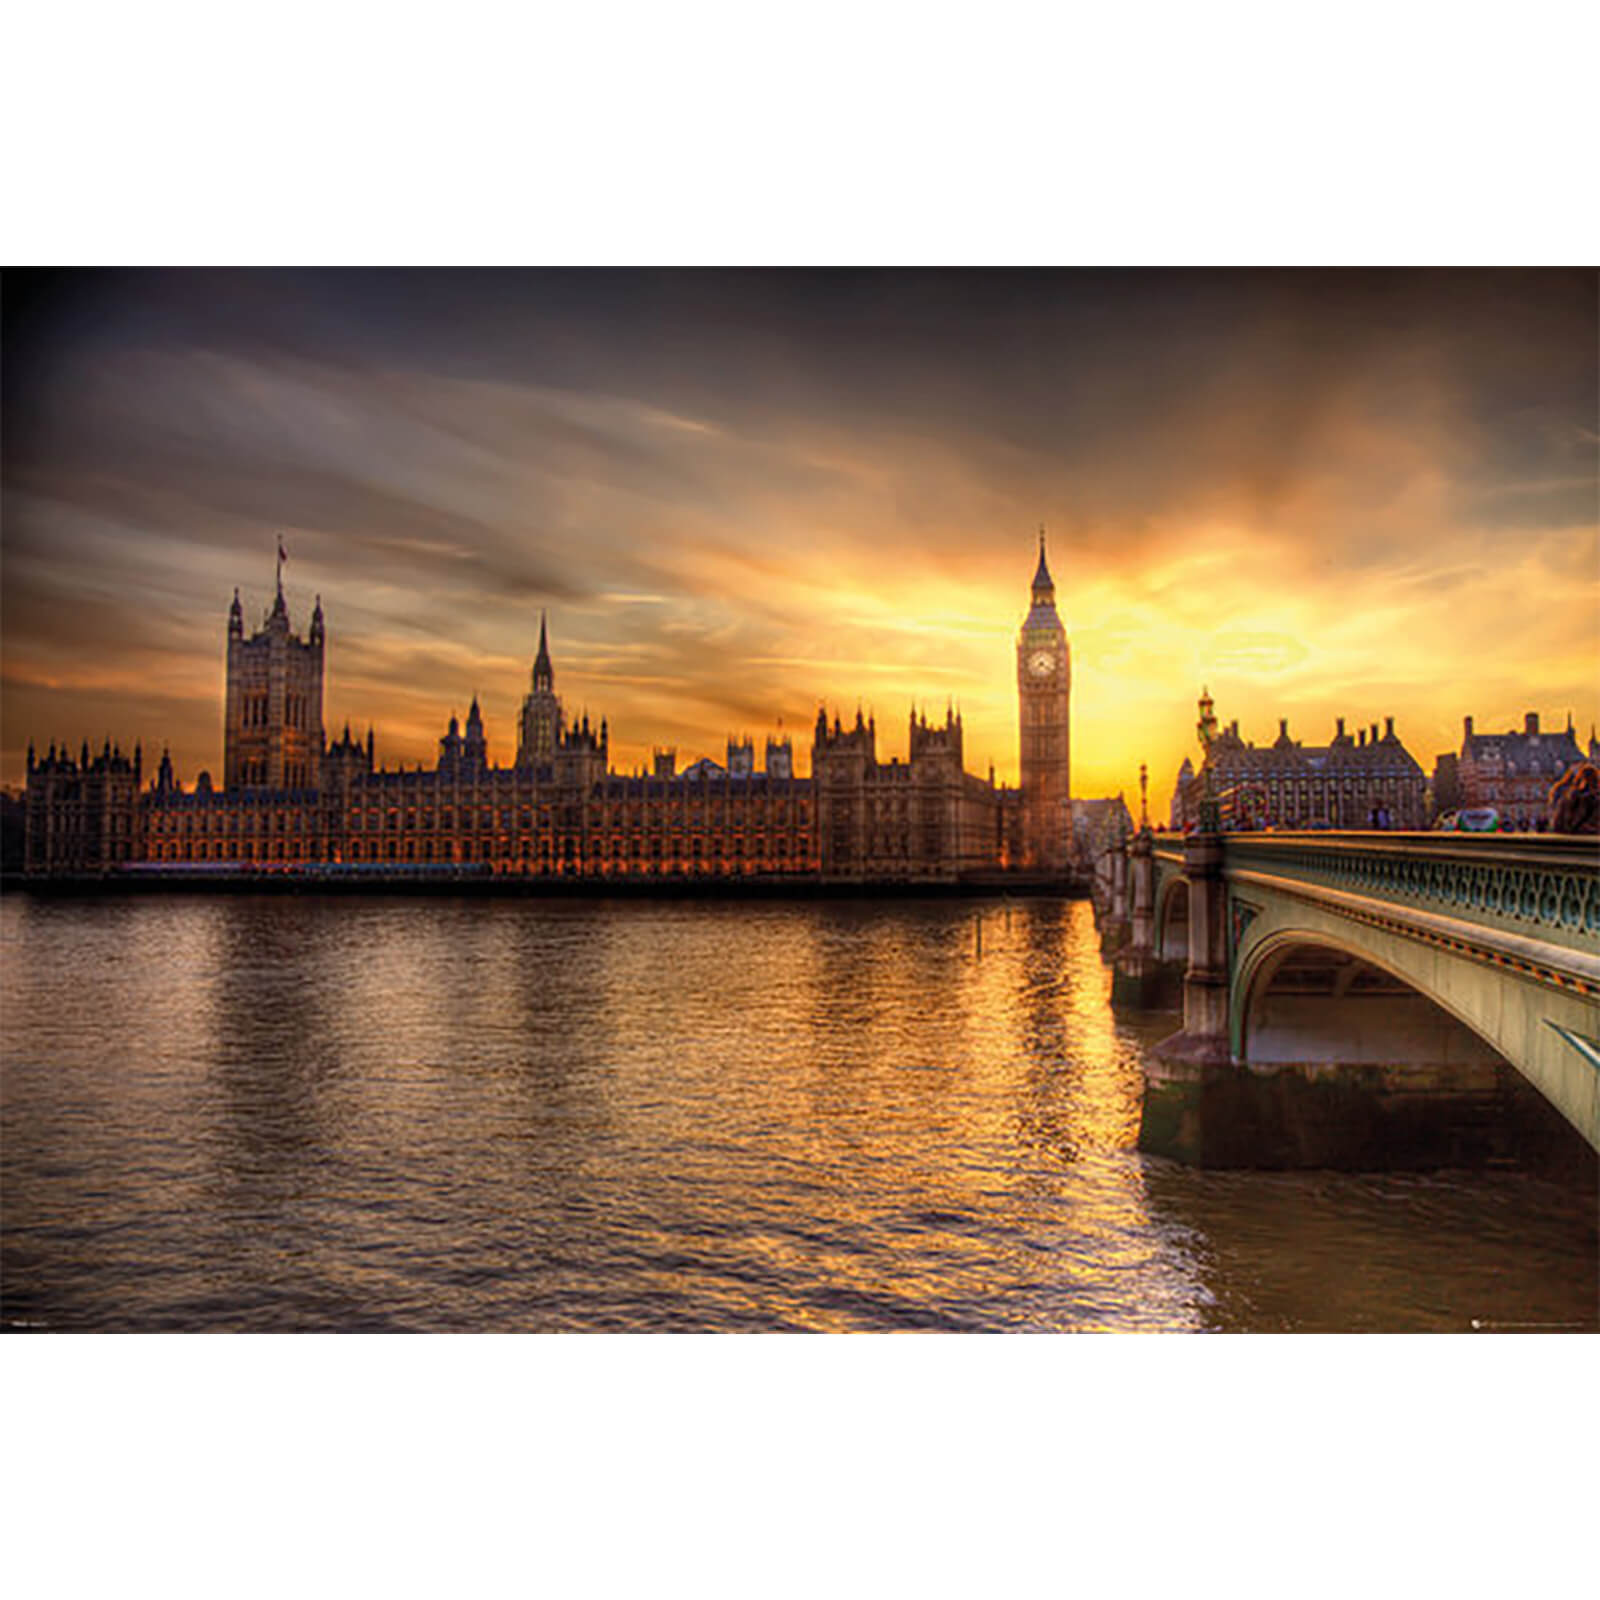 London Big Ben Parliament - 61 x 91.5cm Maxi Poster